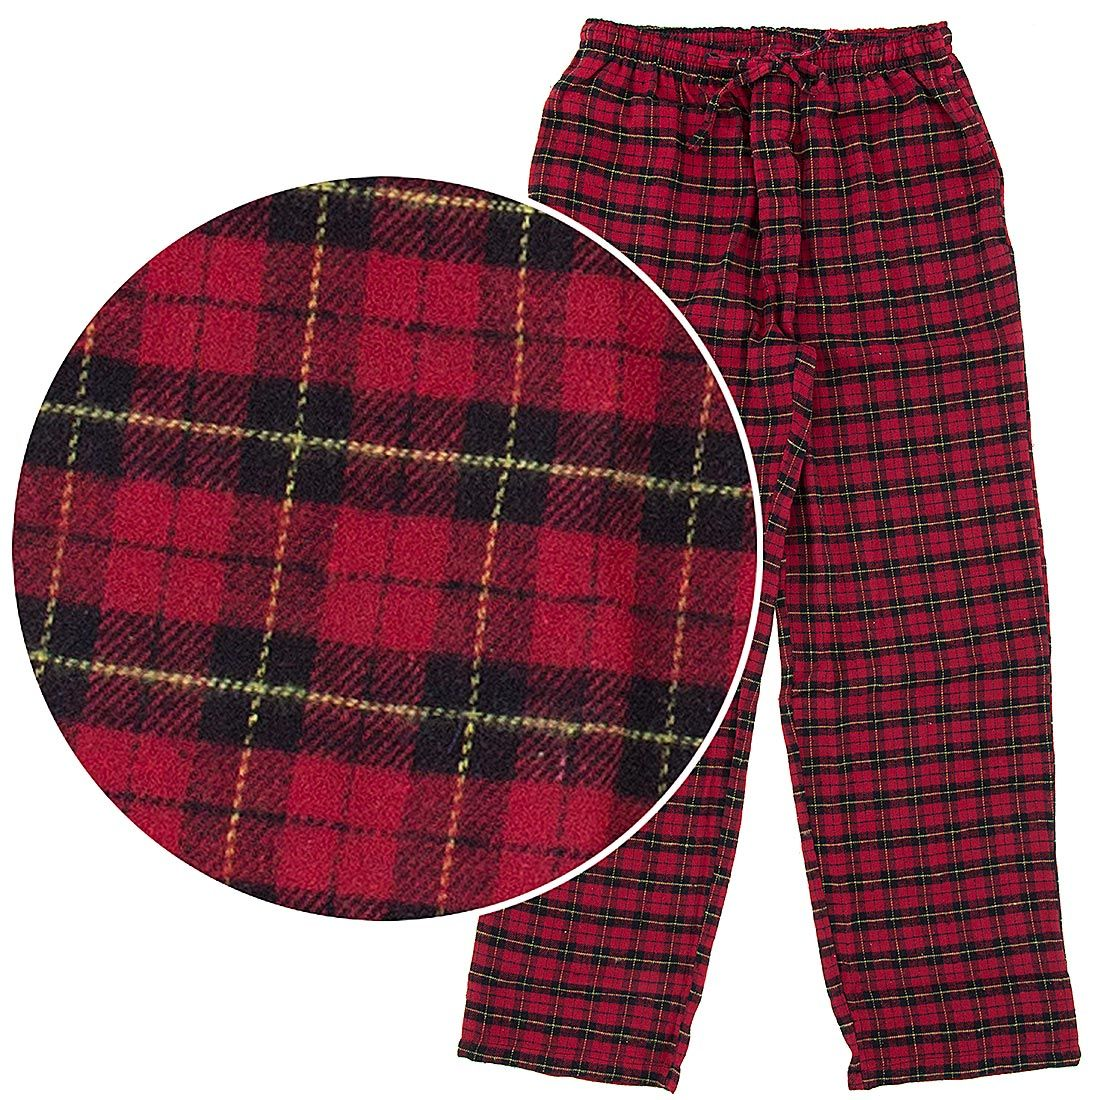 Red flannel pajama pants  Men s Flannel Pajama Pants  My boy Damon  Pinterest  Flannel